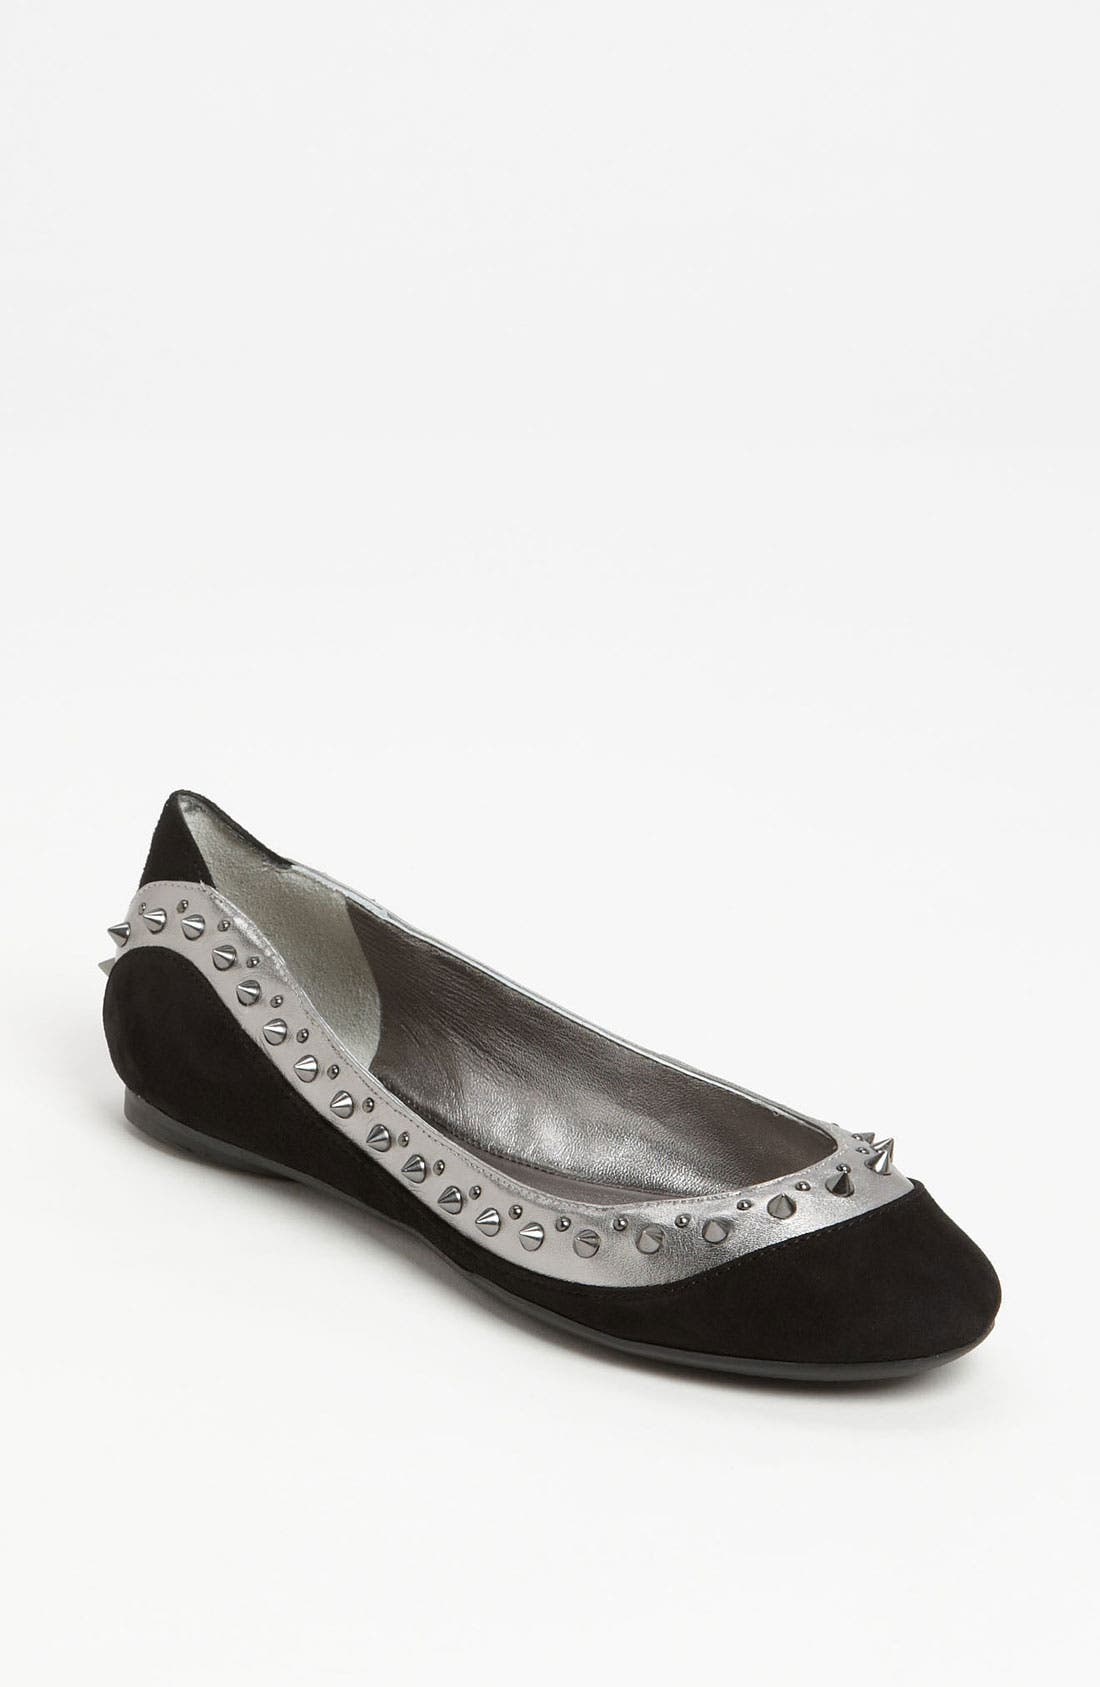 Alternate Image 1 Selected - Belle by Sigerson Morrison 'Alexis' Flat